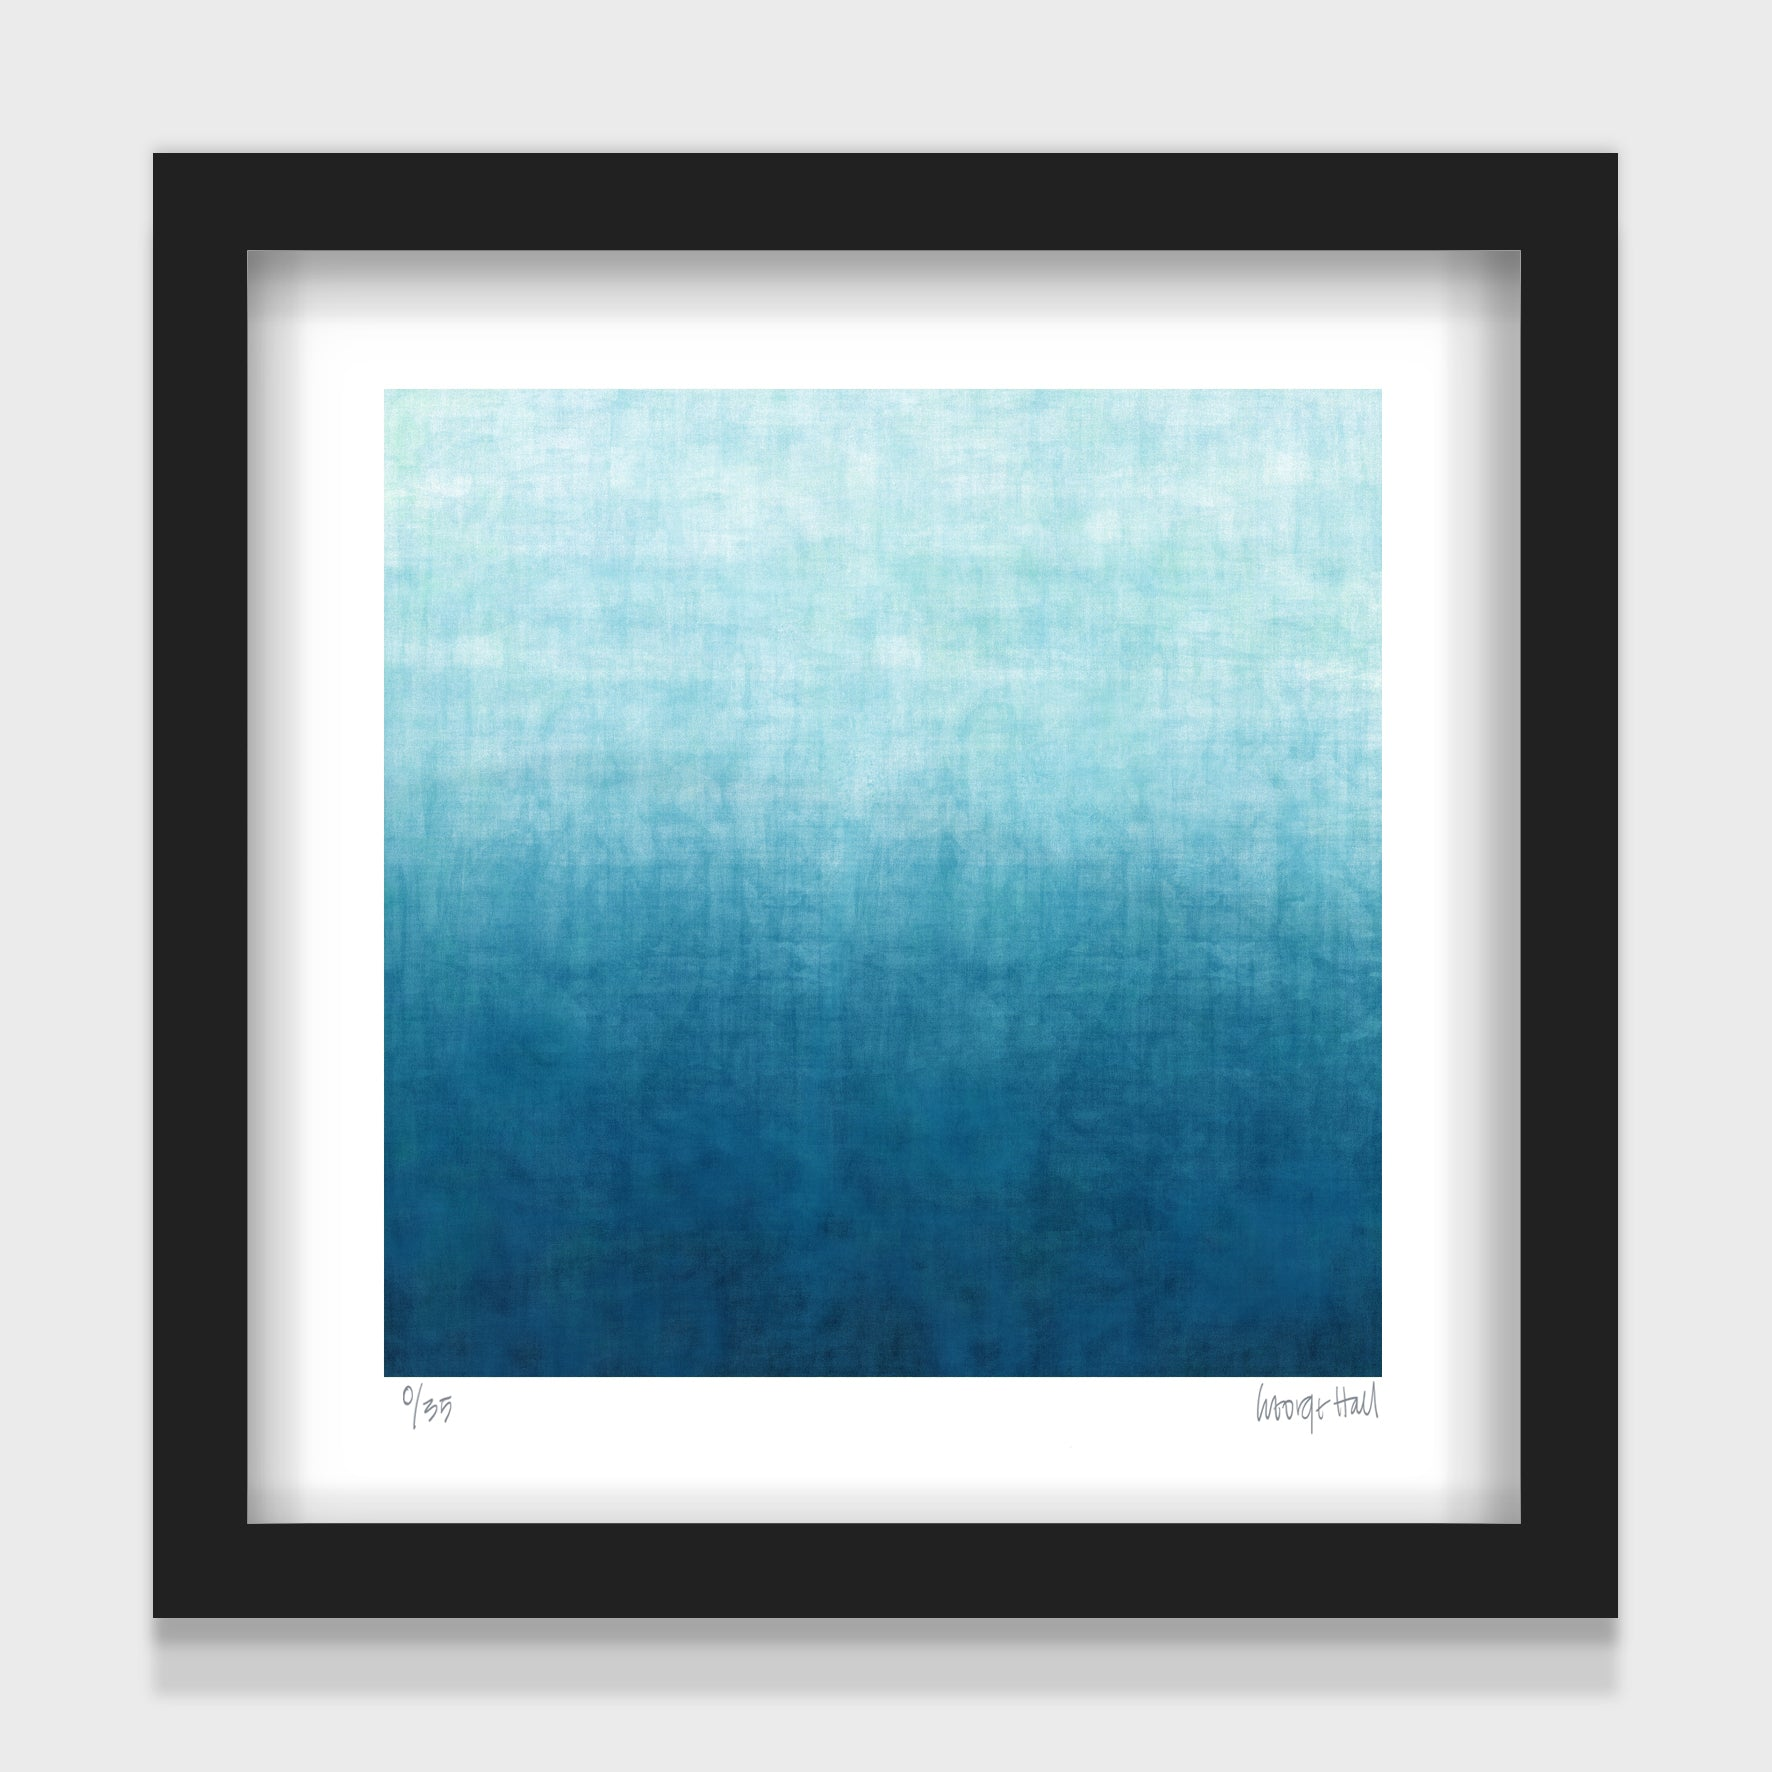 Gradual Beach - small - White/Black Framed or Unframed